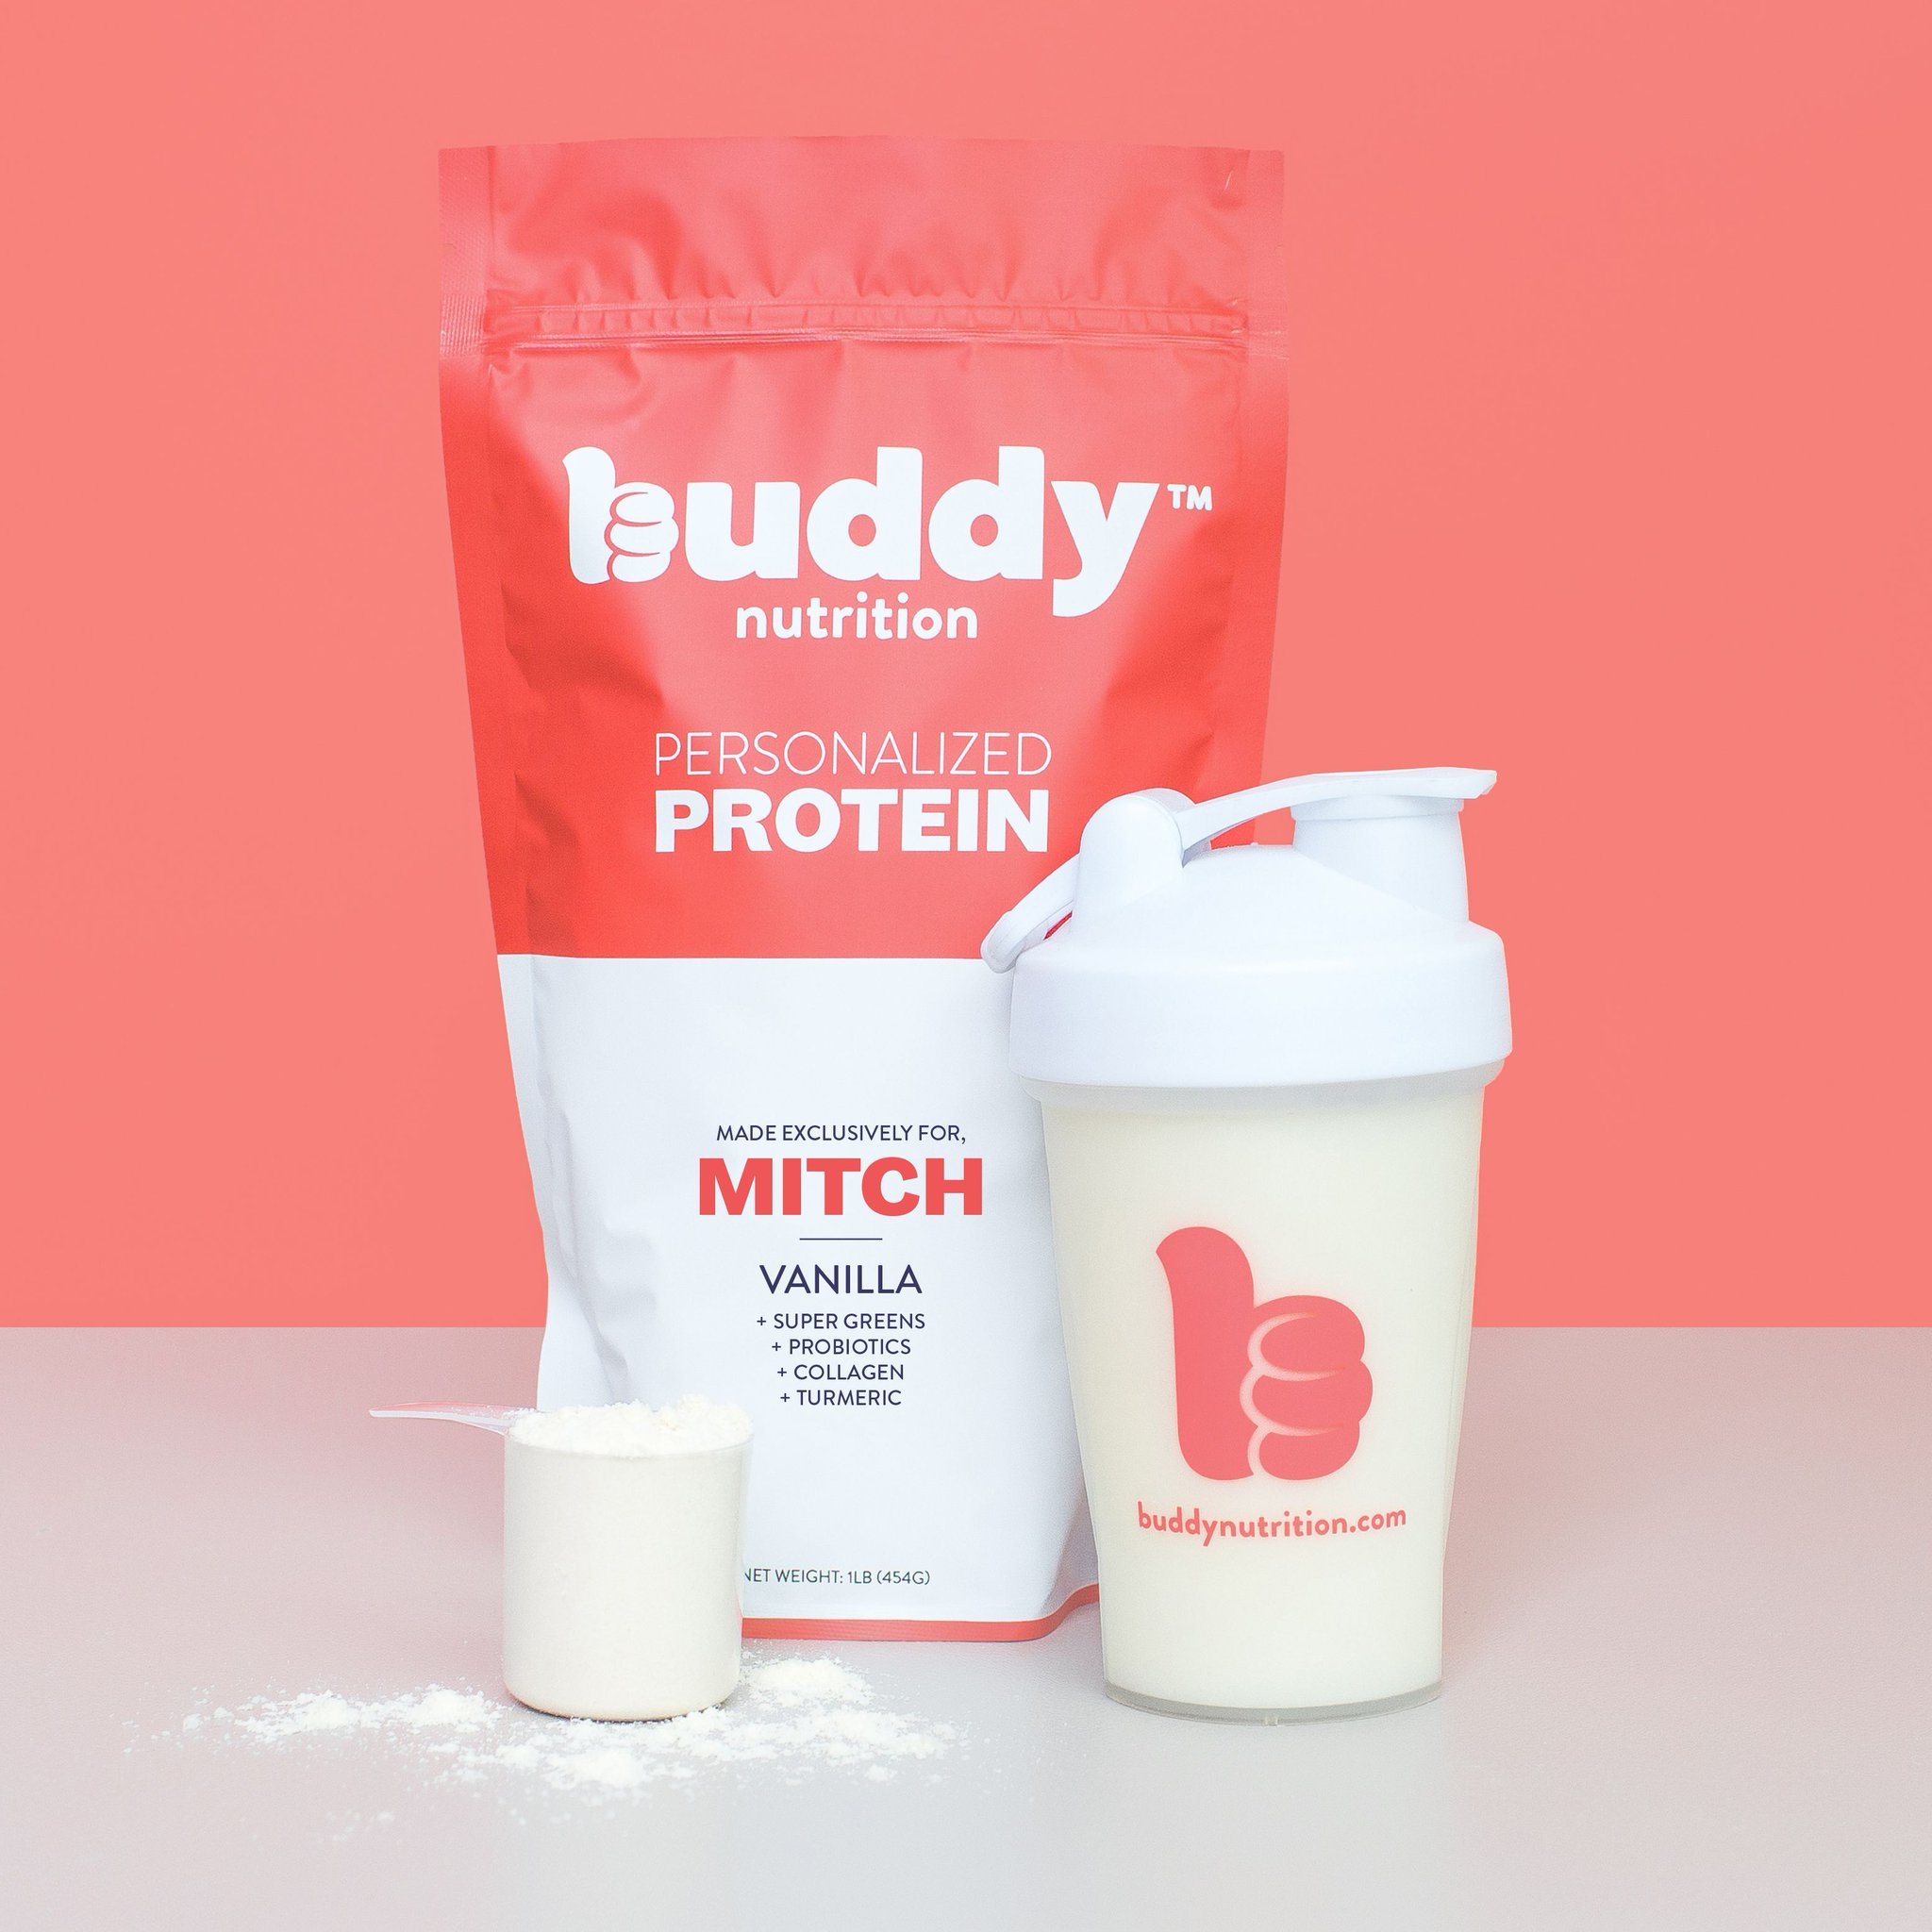 Buddy Nutrition Launches Individually-Personalized Protein Powders